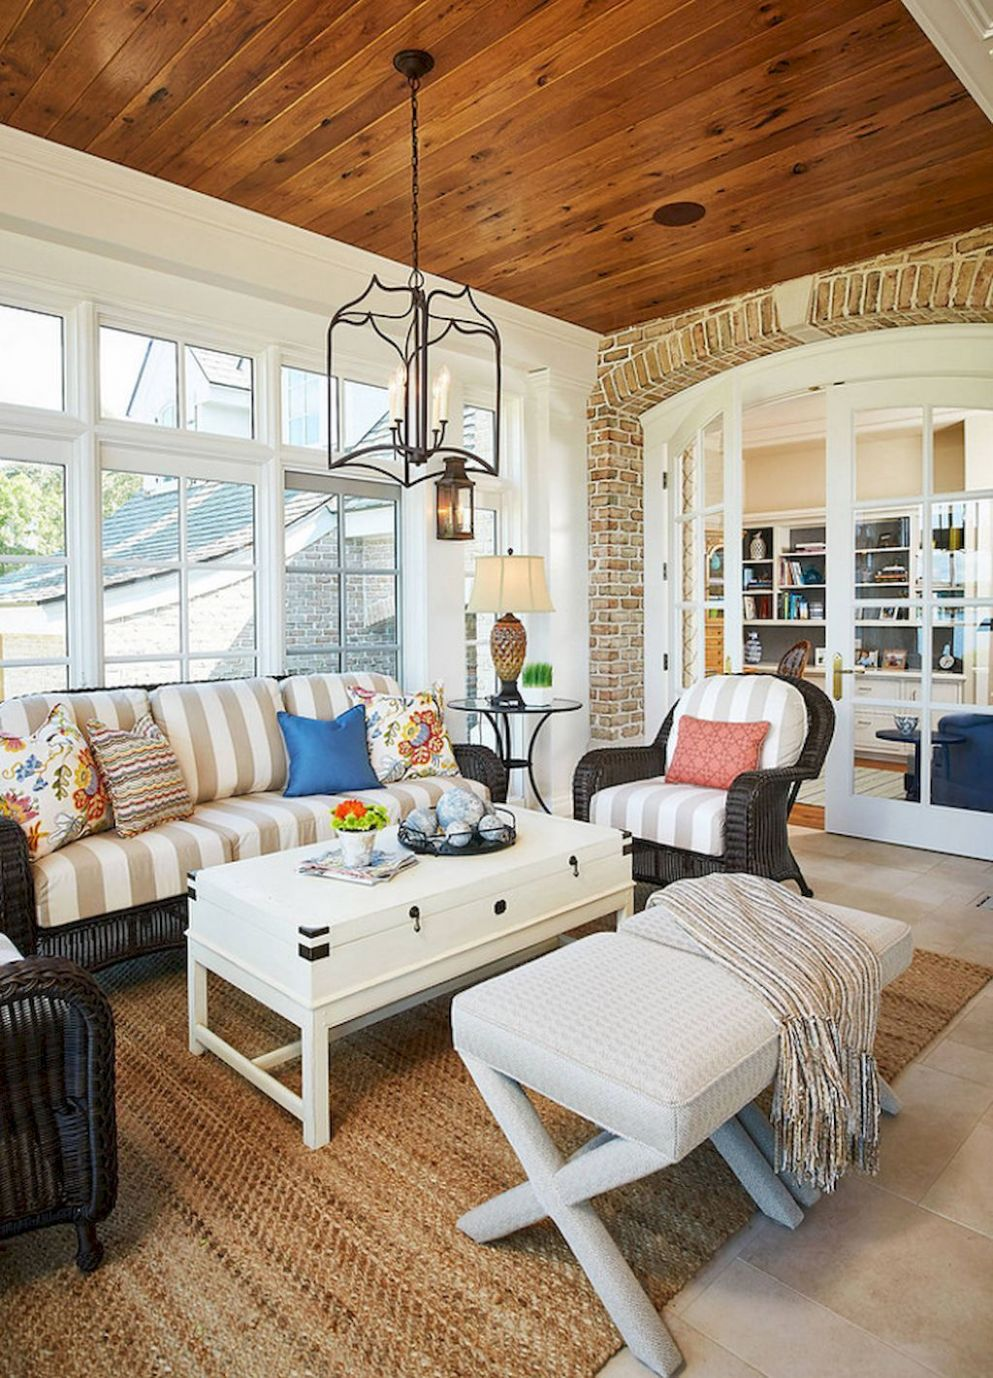 8 cozy farmhouse sunroom decor ideas | Sunroom furniture layout ..